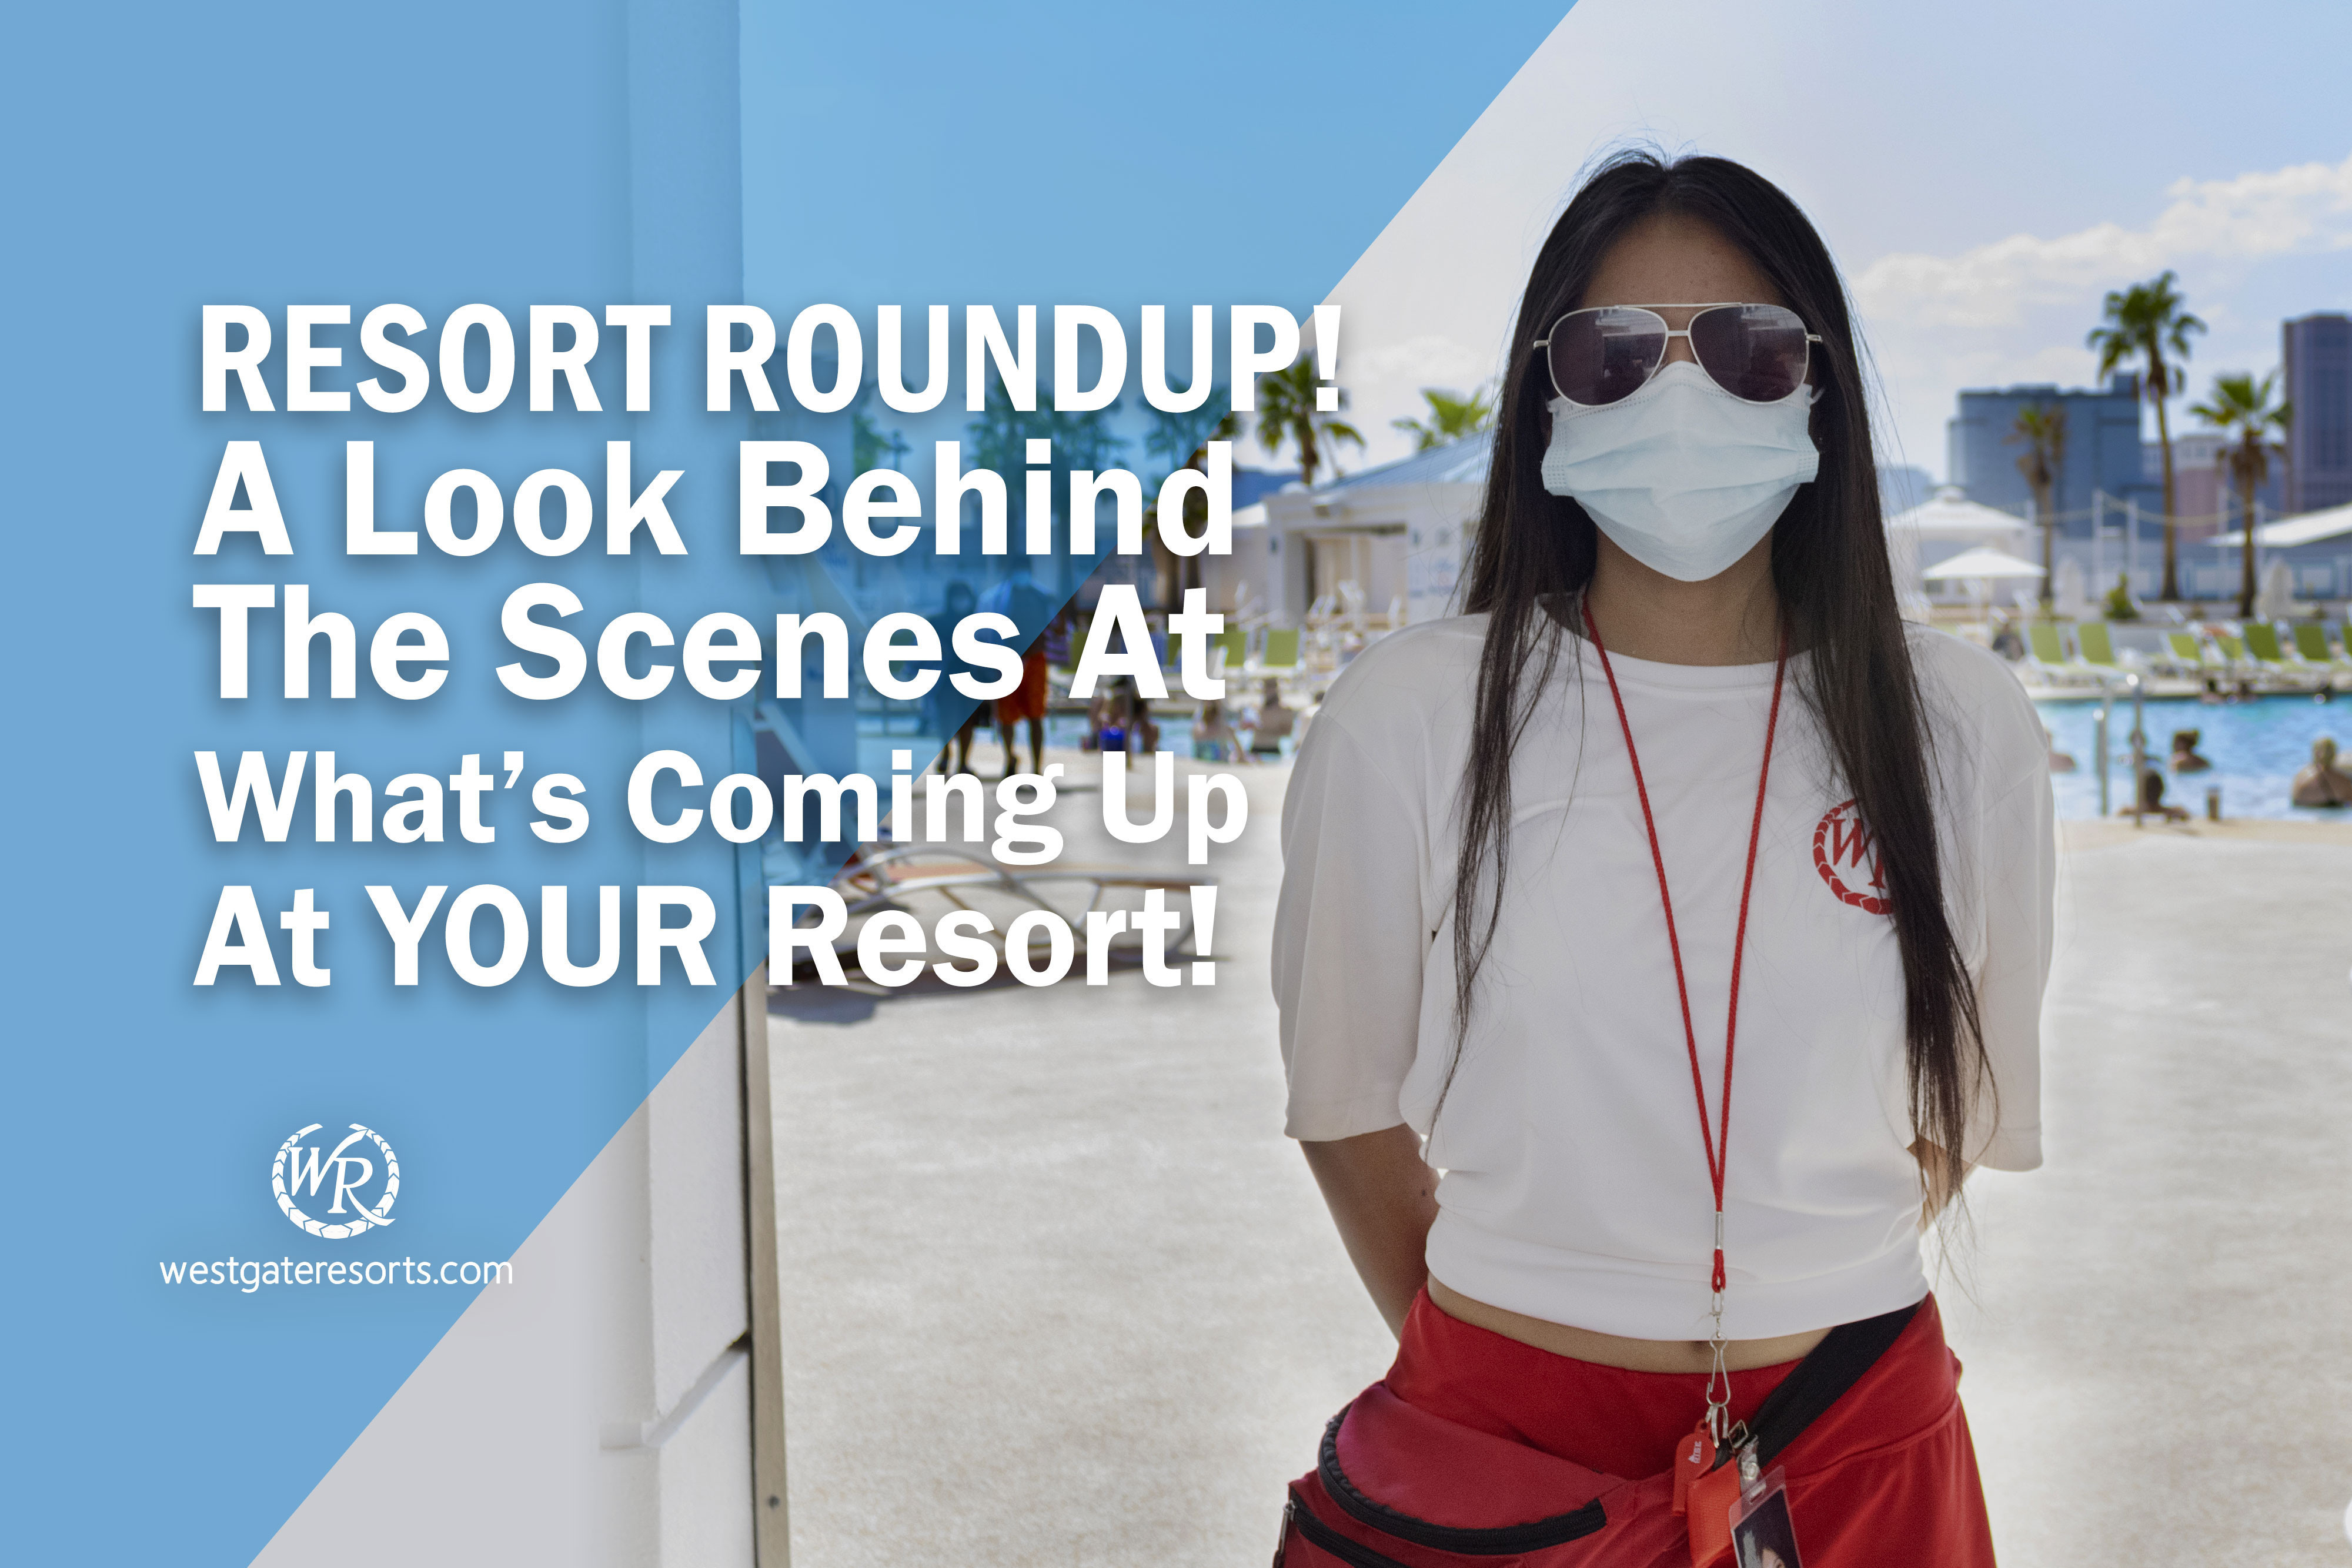 Resort Roundup! A Look Behind The Scenes At What's Coming Up At YOUR Resort!